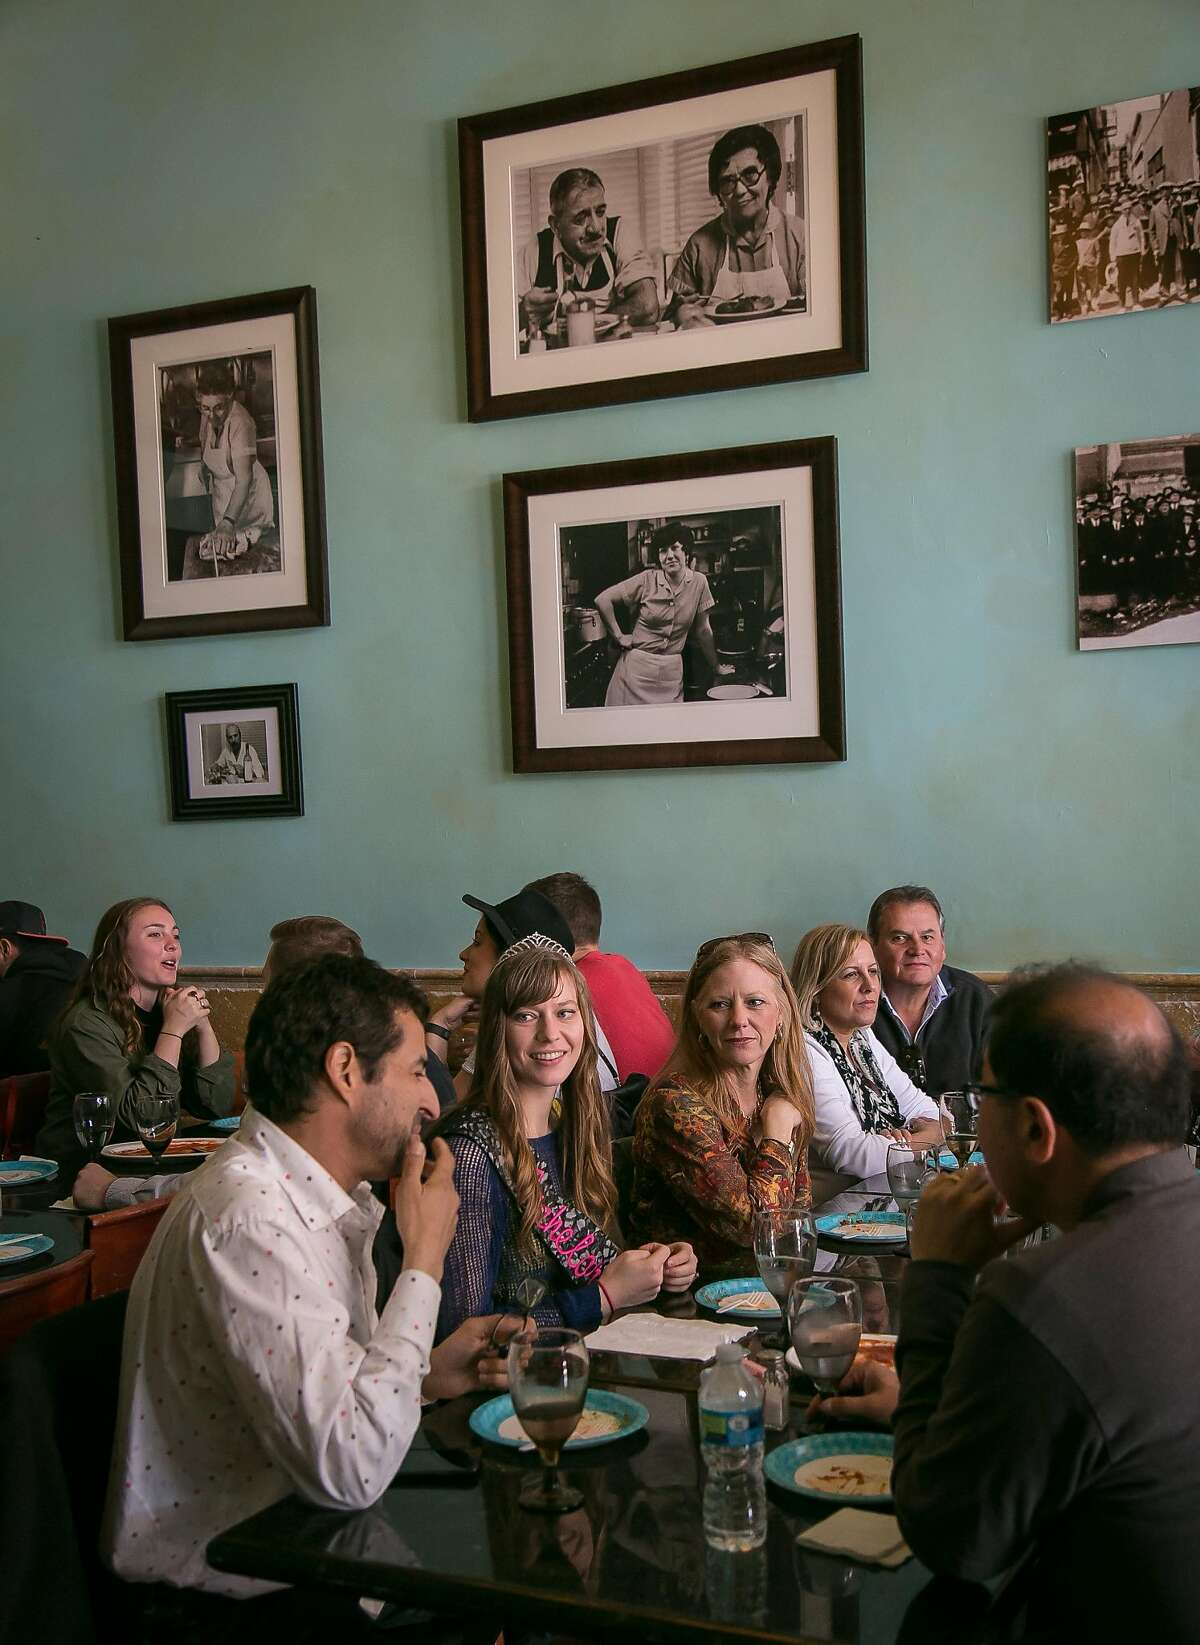 People have lunch at the Original U.S. Restaurant in San Francisco, Calif. on Saturday, February, 13th, 2016.